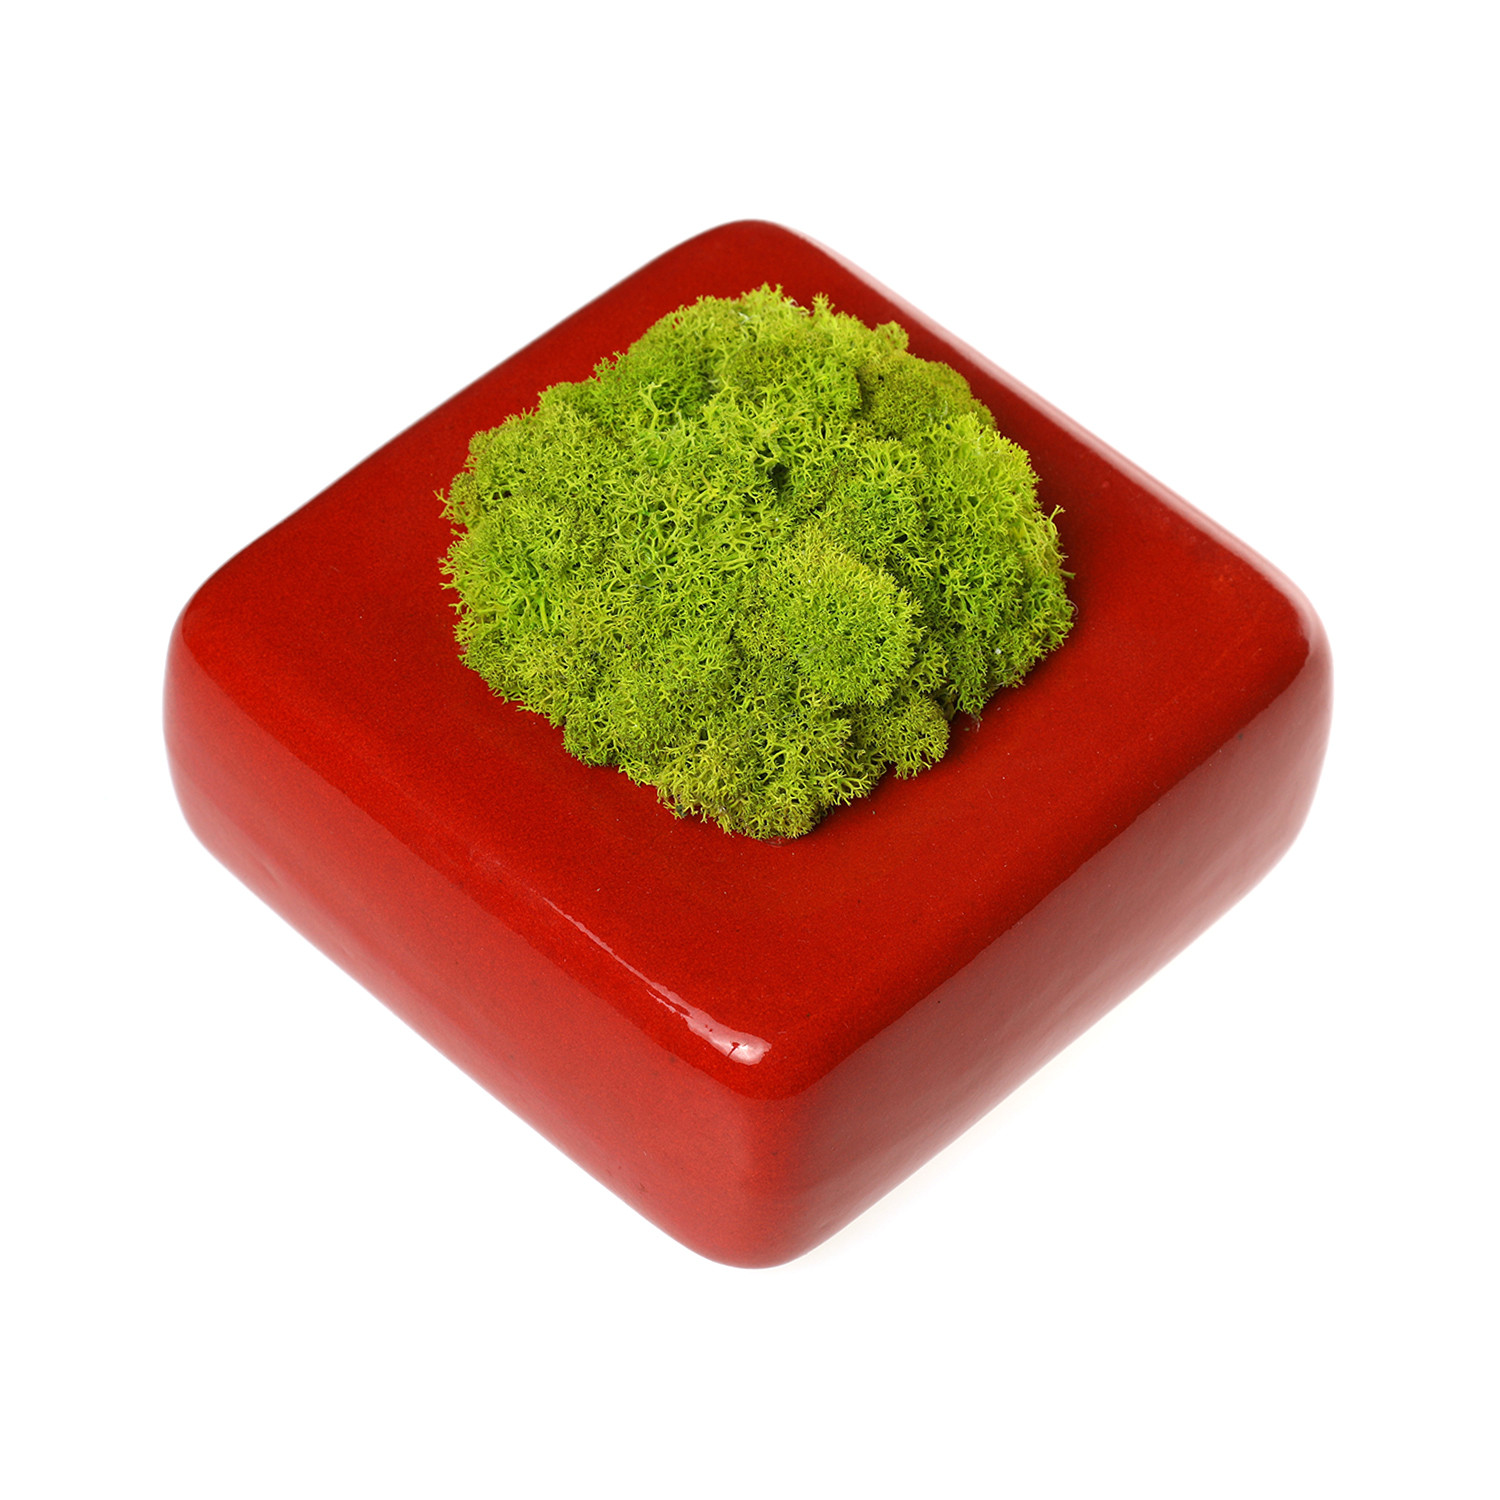 Reindeer Moss Solo Ceramic Planter Red Green